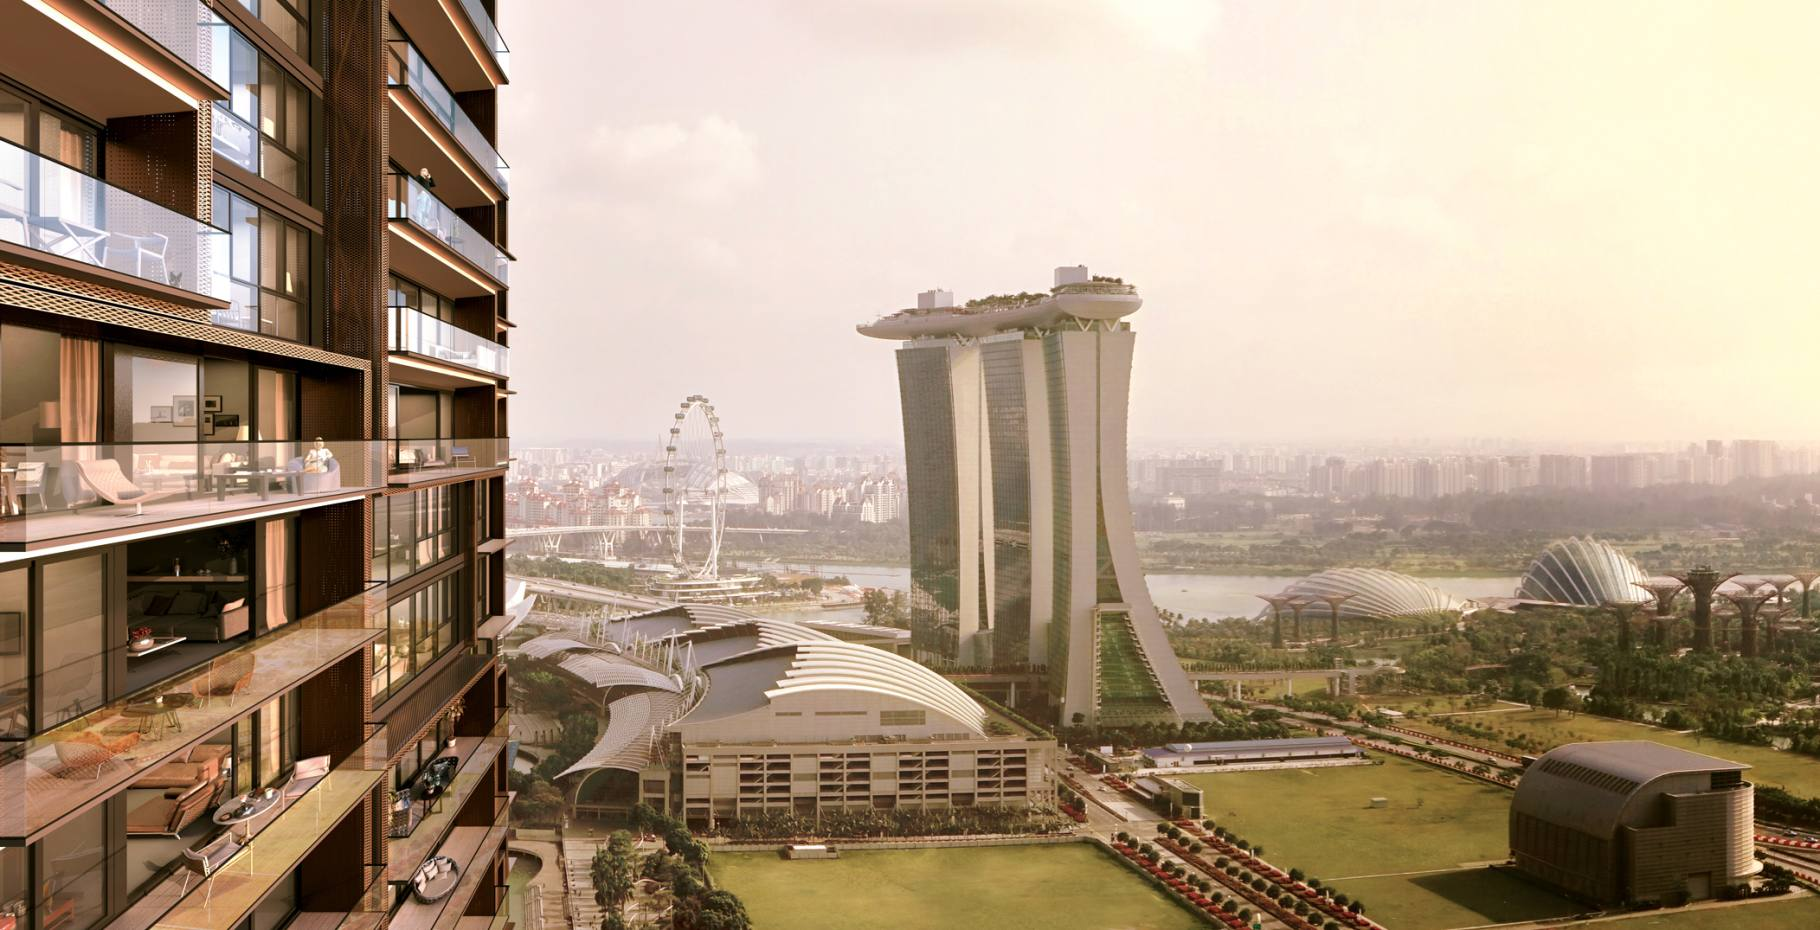 At Marina One in Singapore, a penthouse is on sale for about £11.25m through Knight Frank